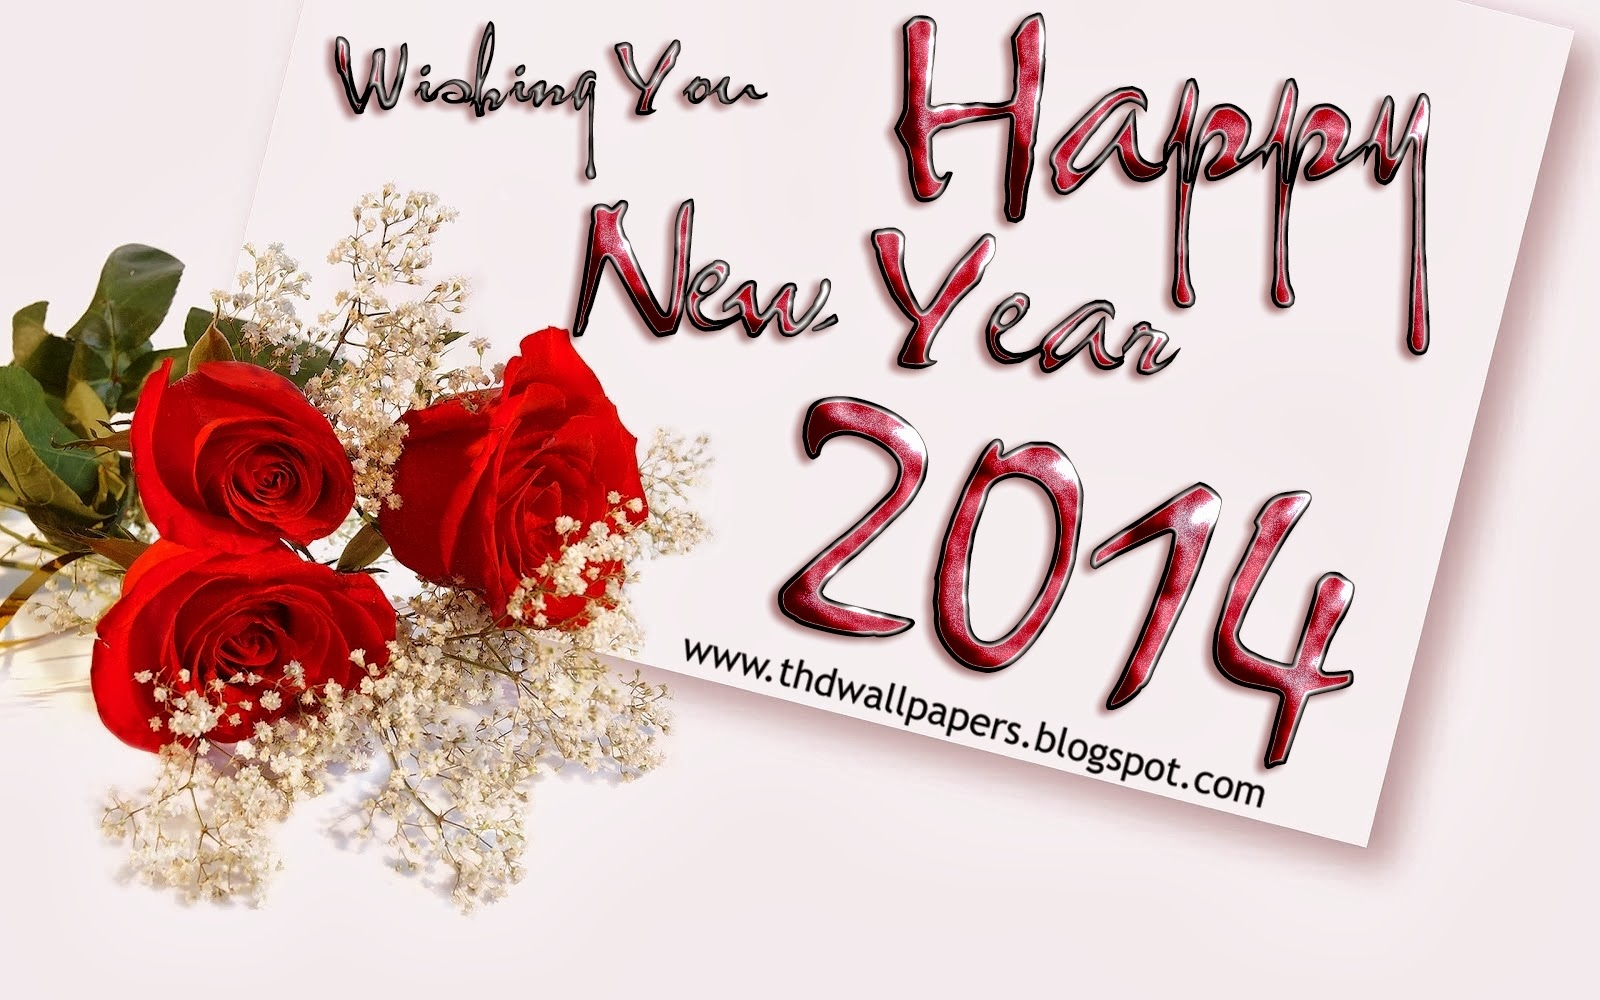 2014 Happy New Year Wishes.6 Best Happy New Year Wallpapers 2014